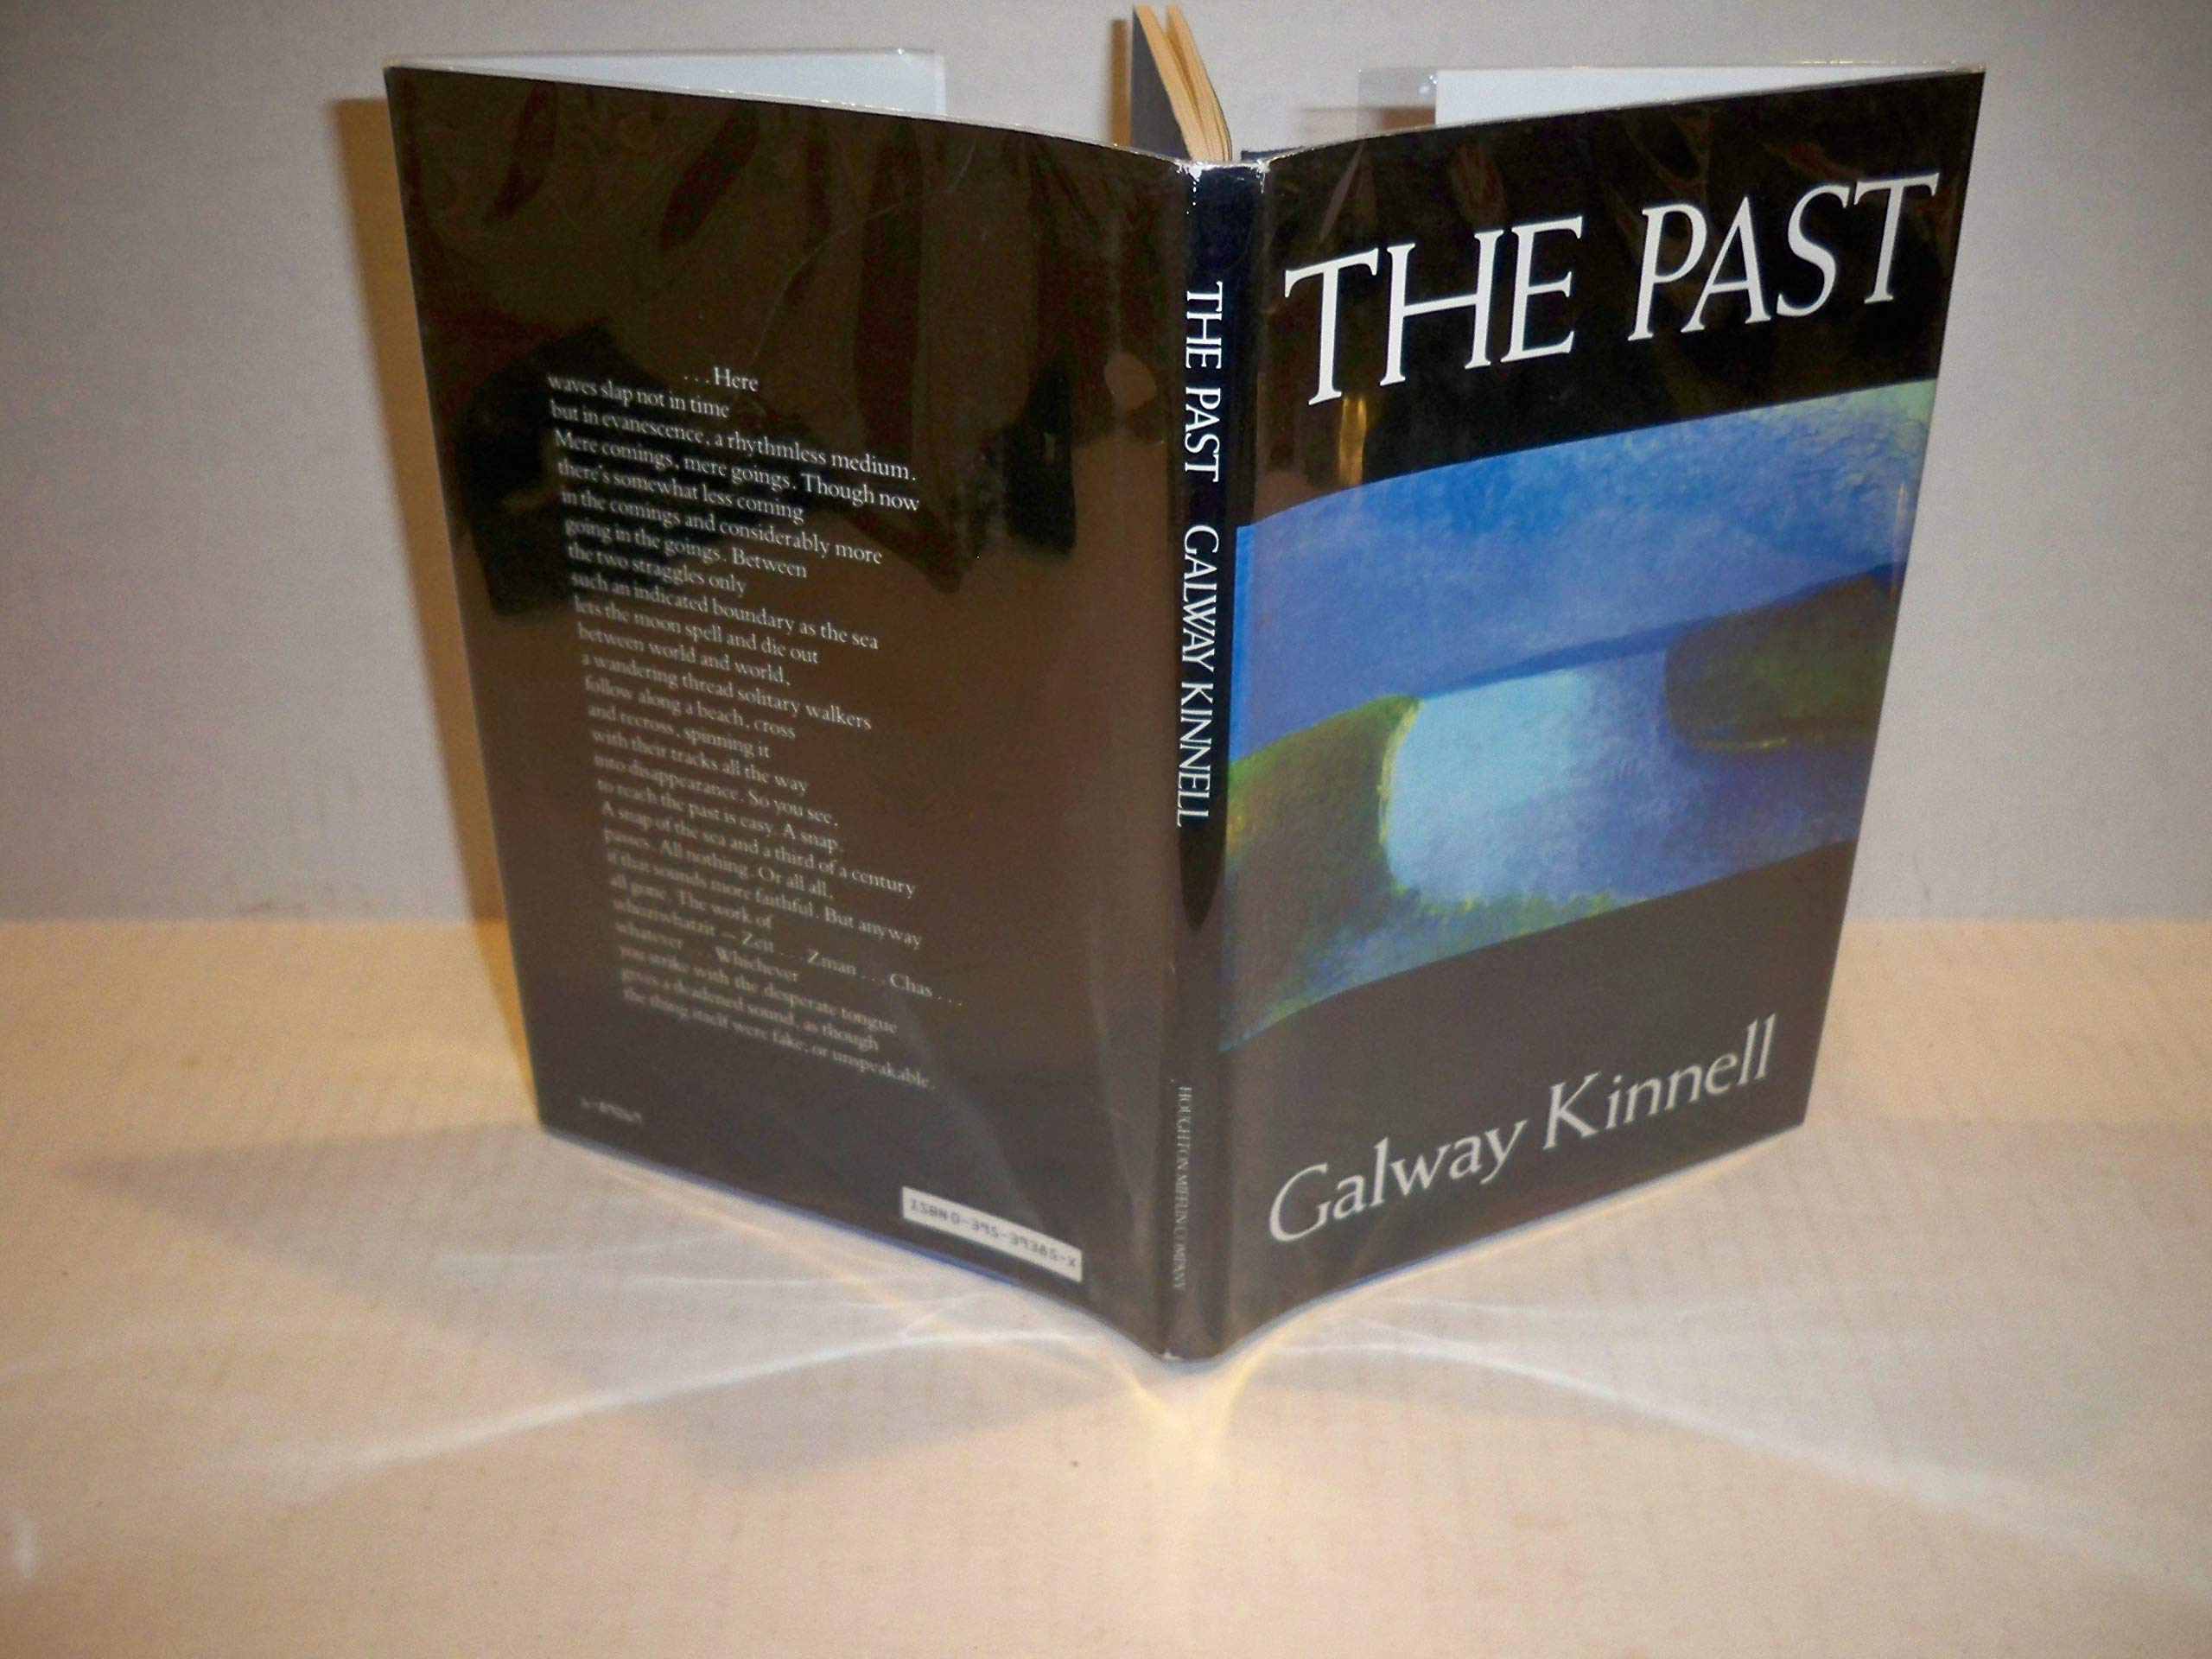 The Past Galway Kinnell 9780395393857 Amazoncom Books